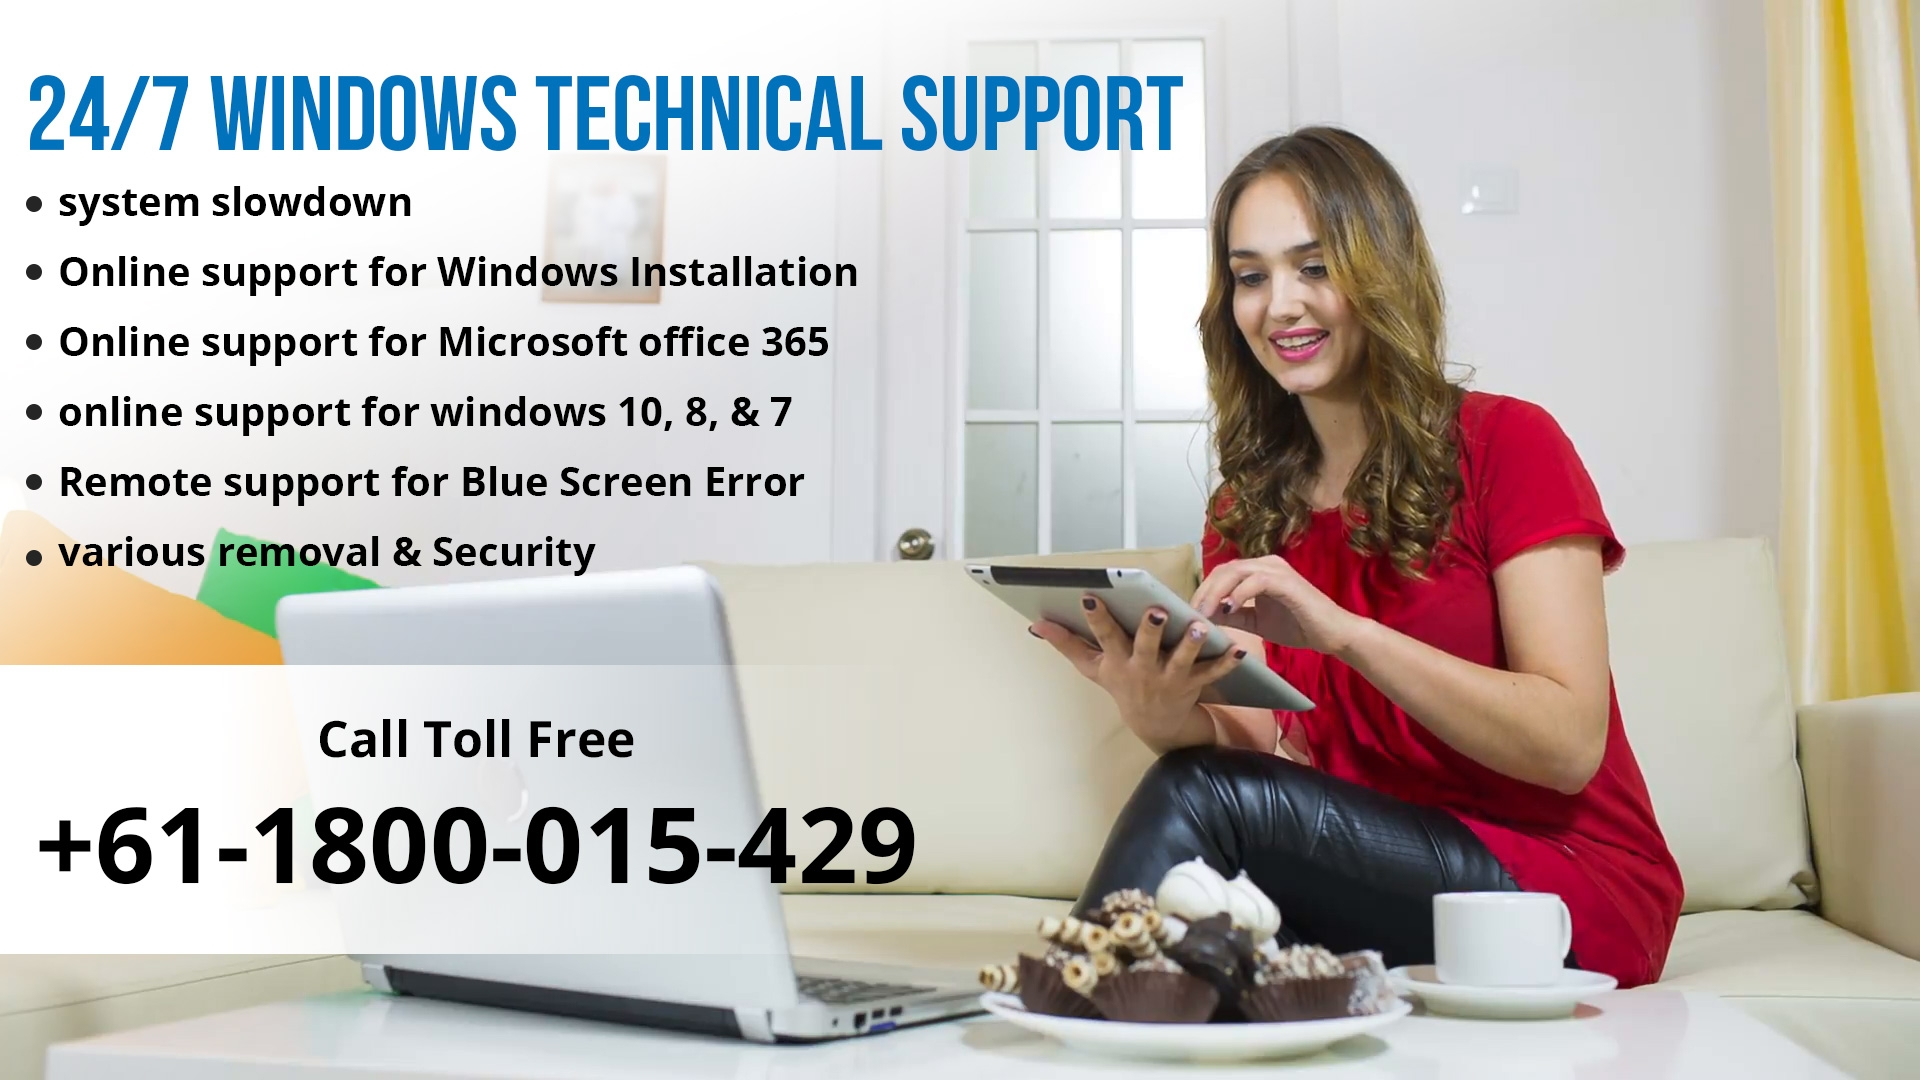 Online Windows Technical Support 61-1800-015-429 (@abhiglobe1) Cover Image